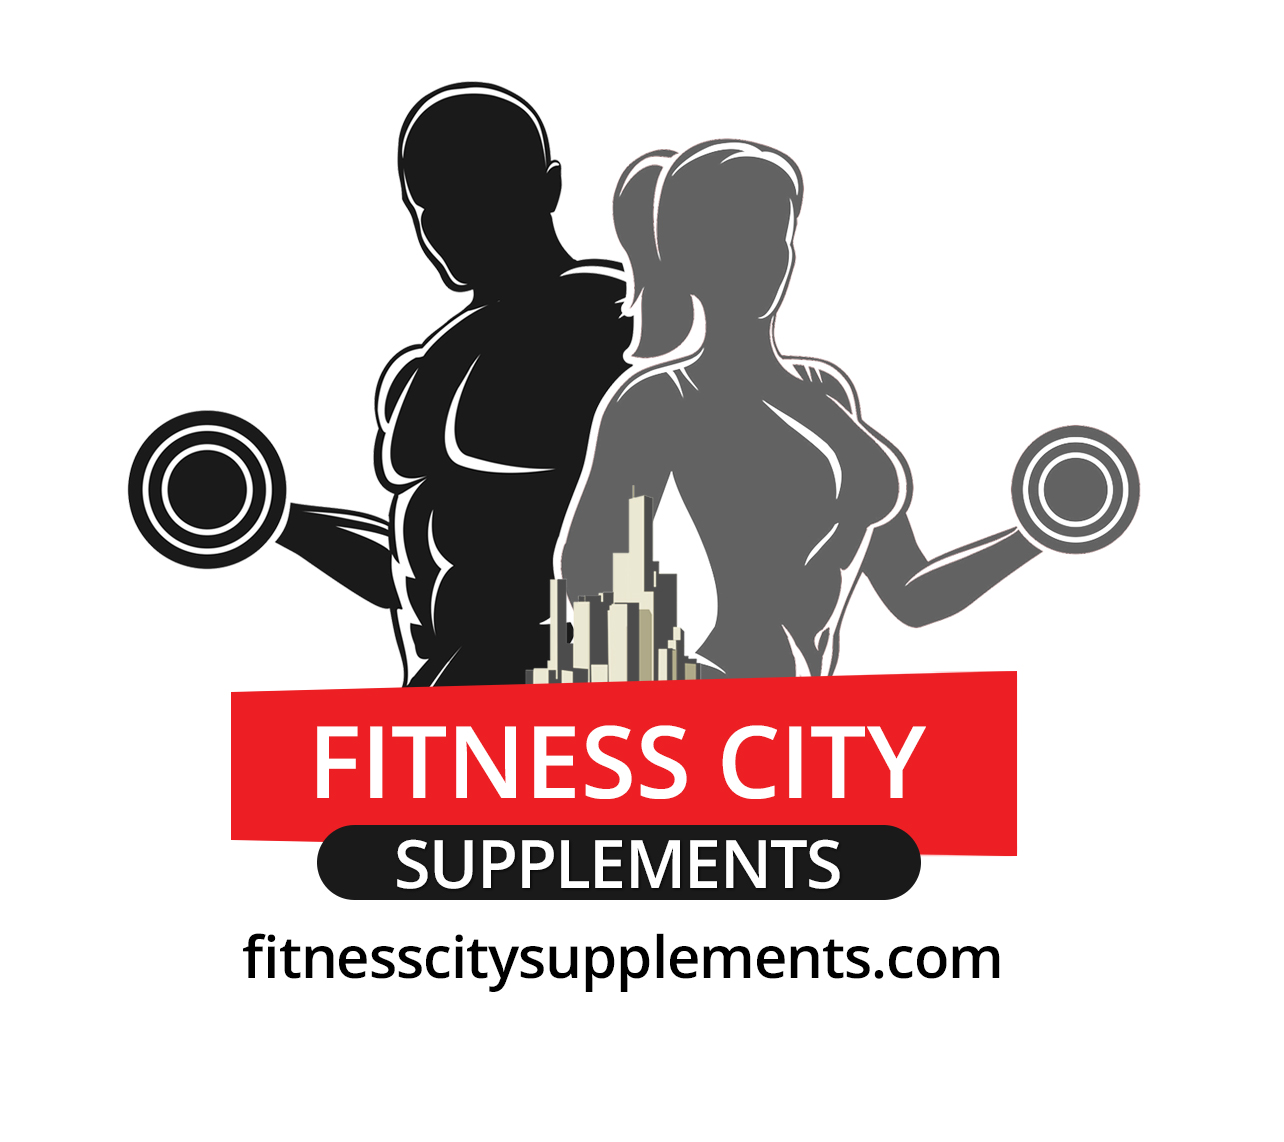 fitness-city-logo-white-2